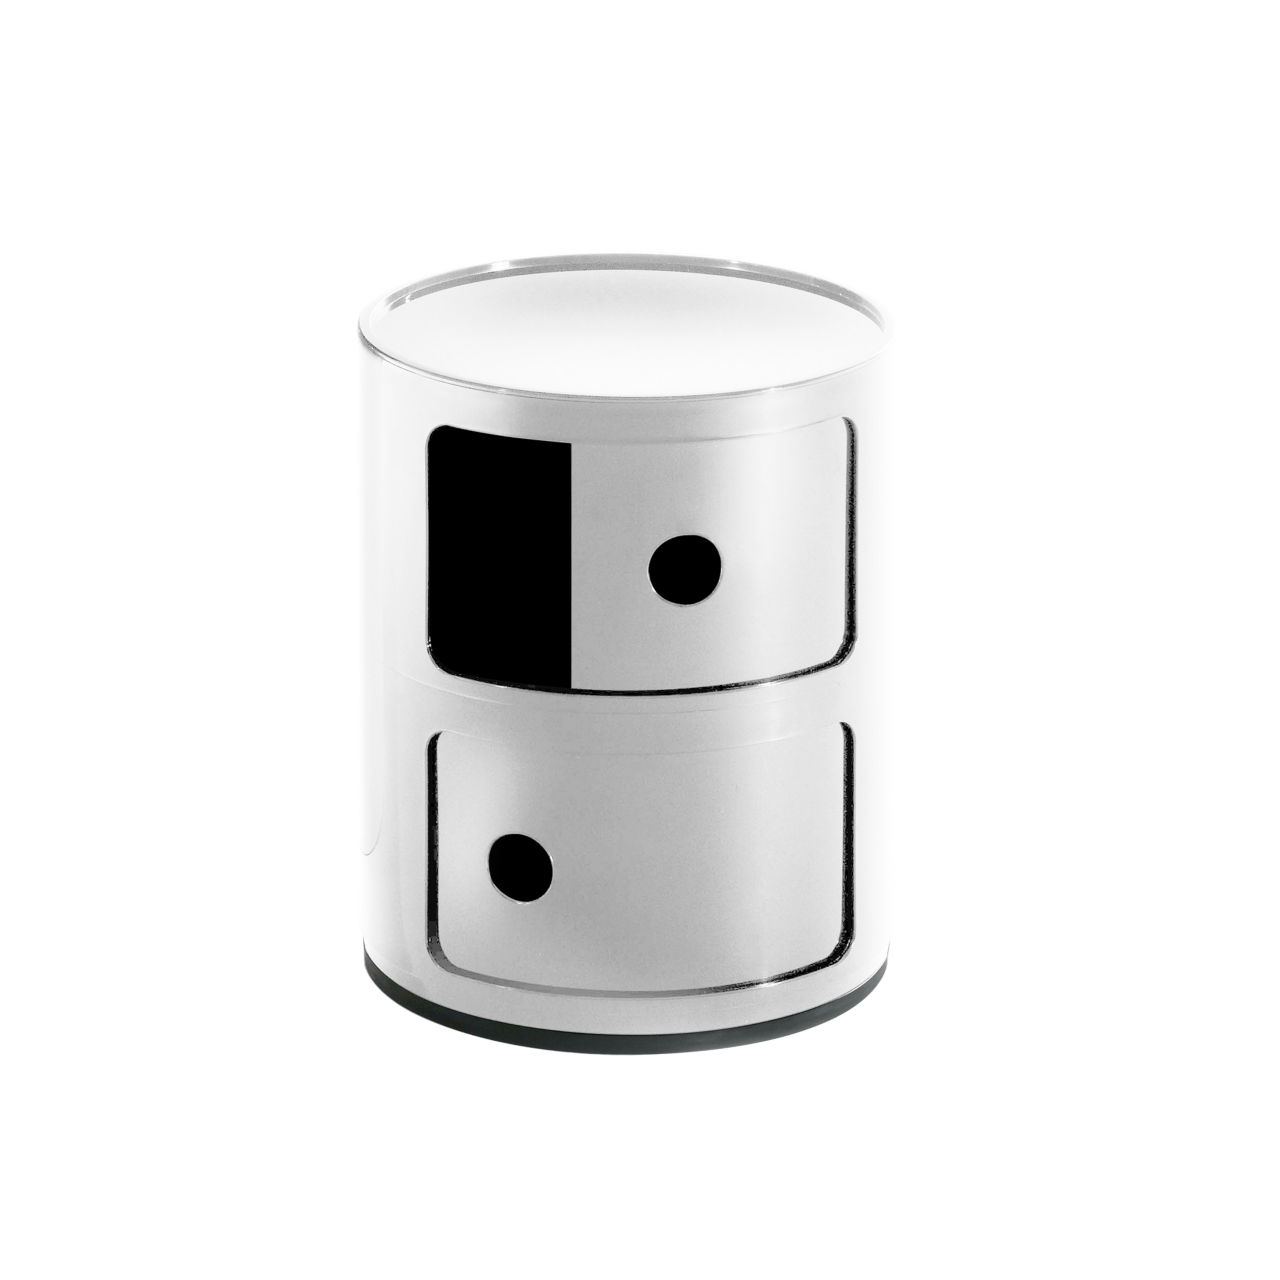 Componibili Small Round Storage Modules in White by Kartell